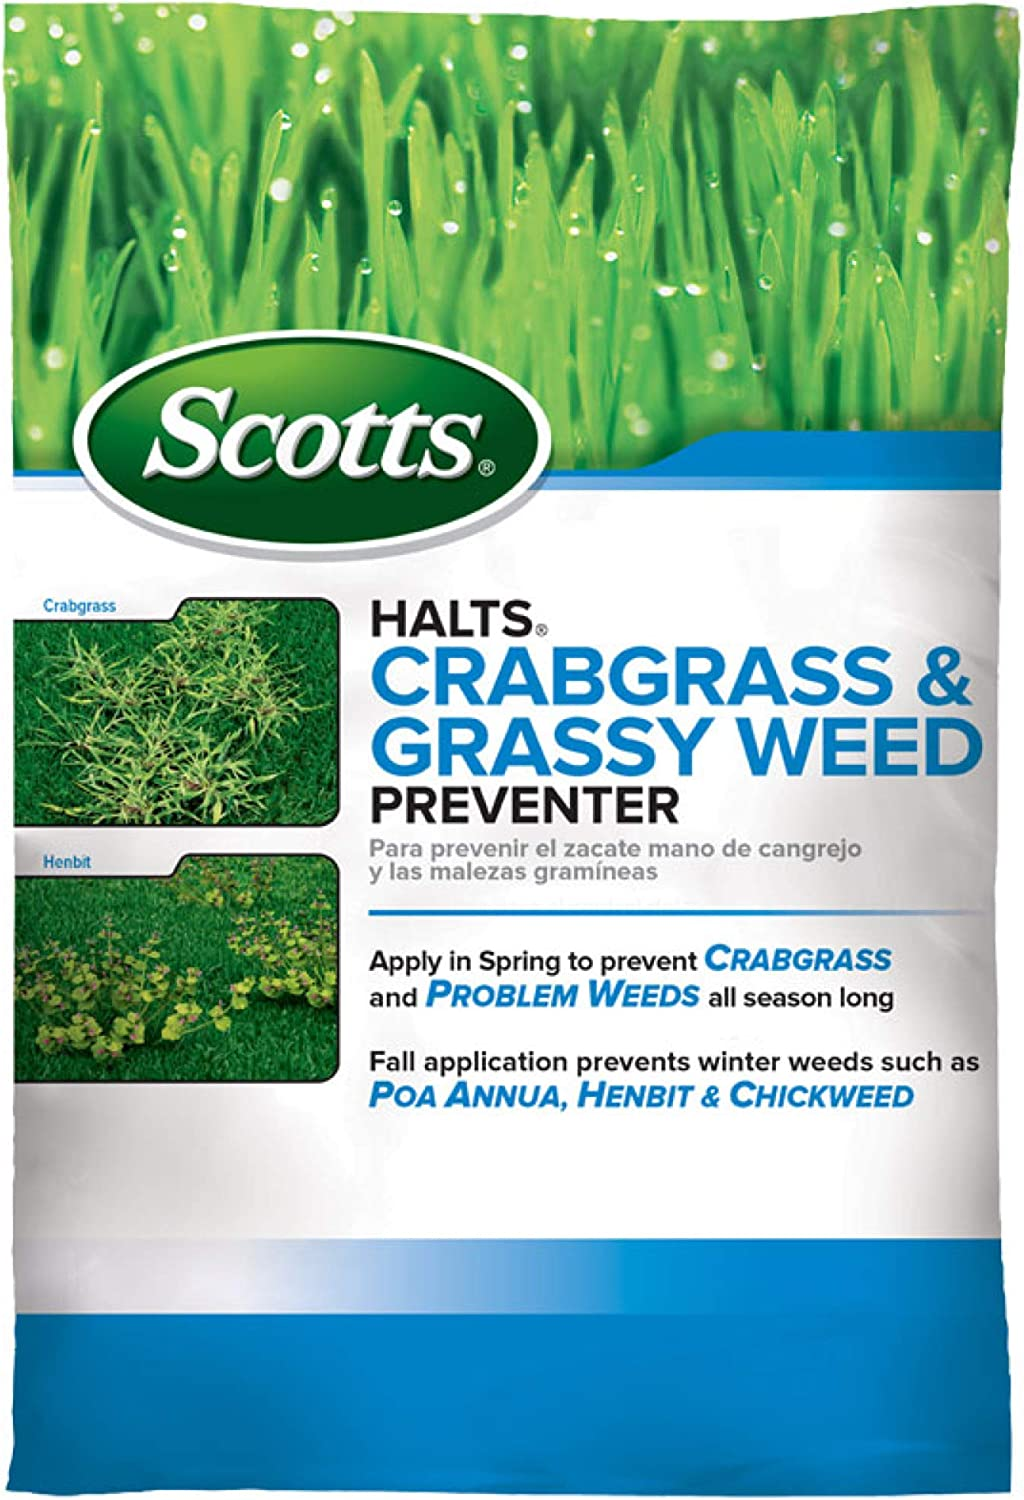 Scotts Halts Crabgrass Preventer